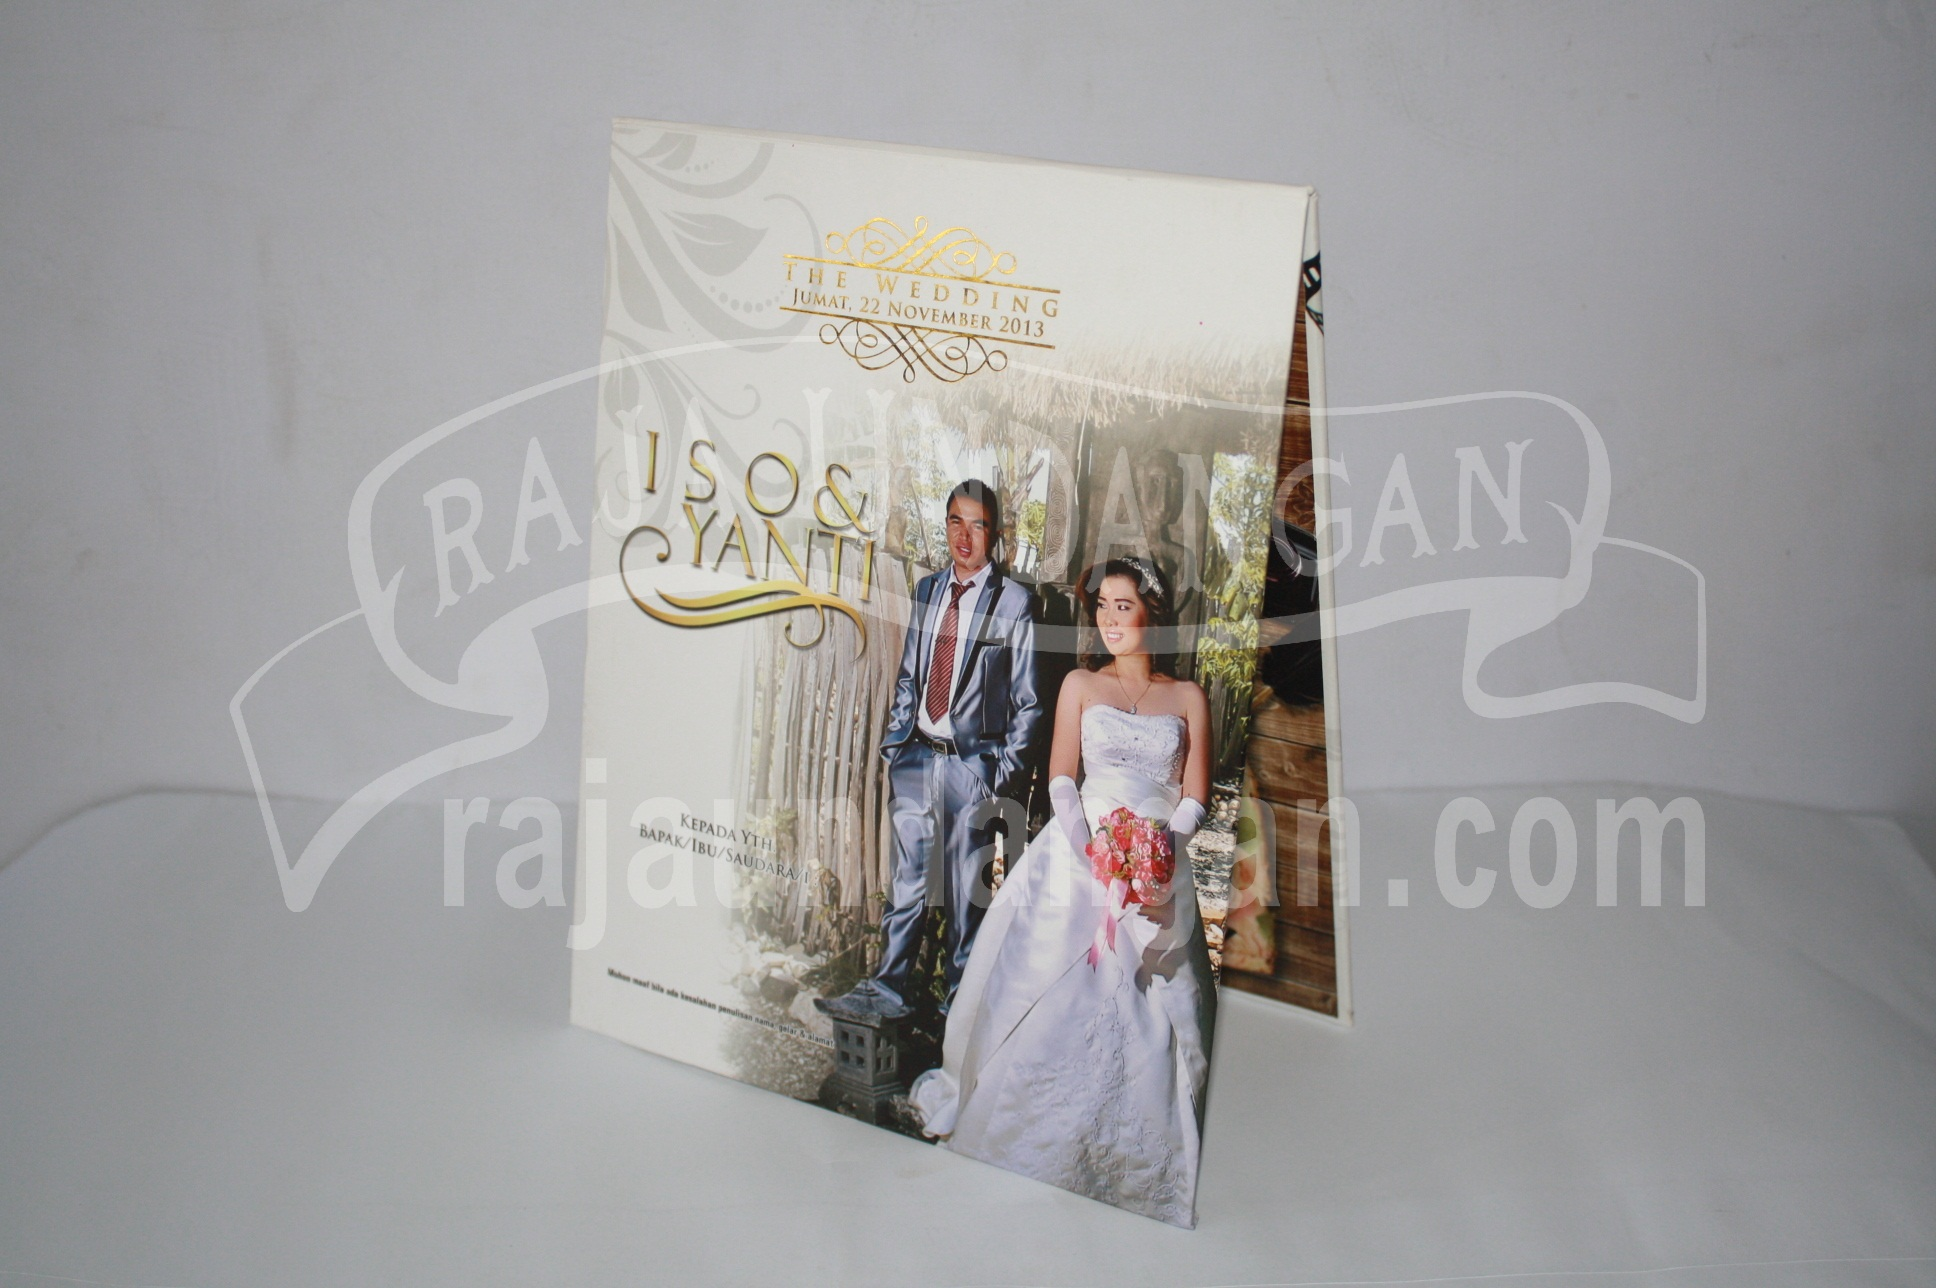 Undangan Pernikahan Hardcover Pop Up Iso dan Yanti EDC 451 - Pesan Wedding Invitations Murah di Warugunung